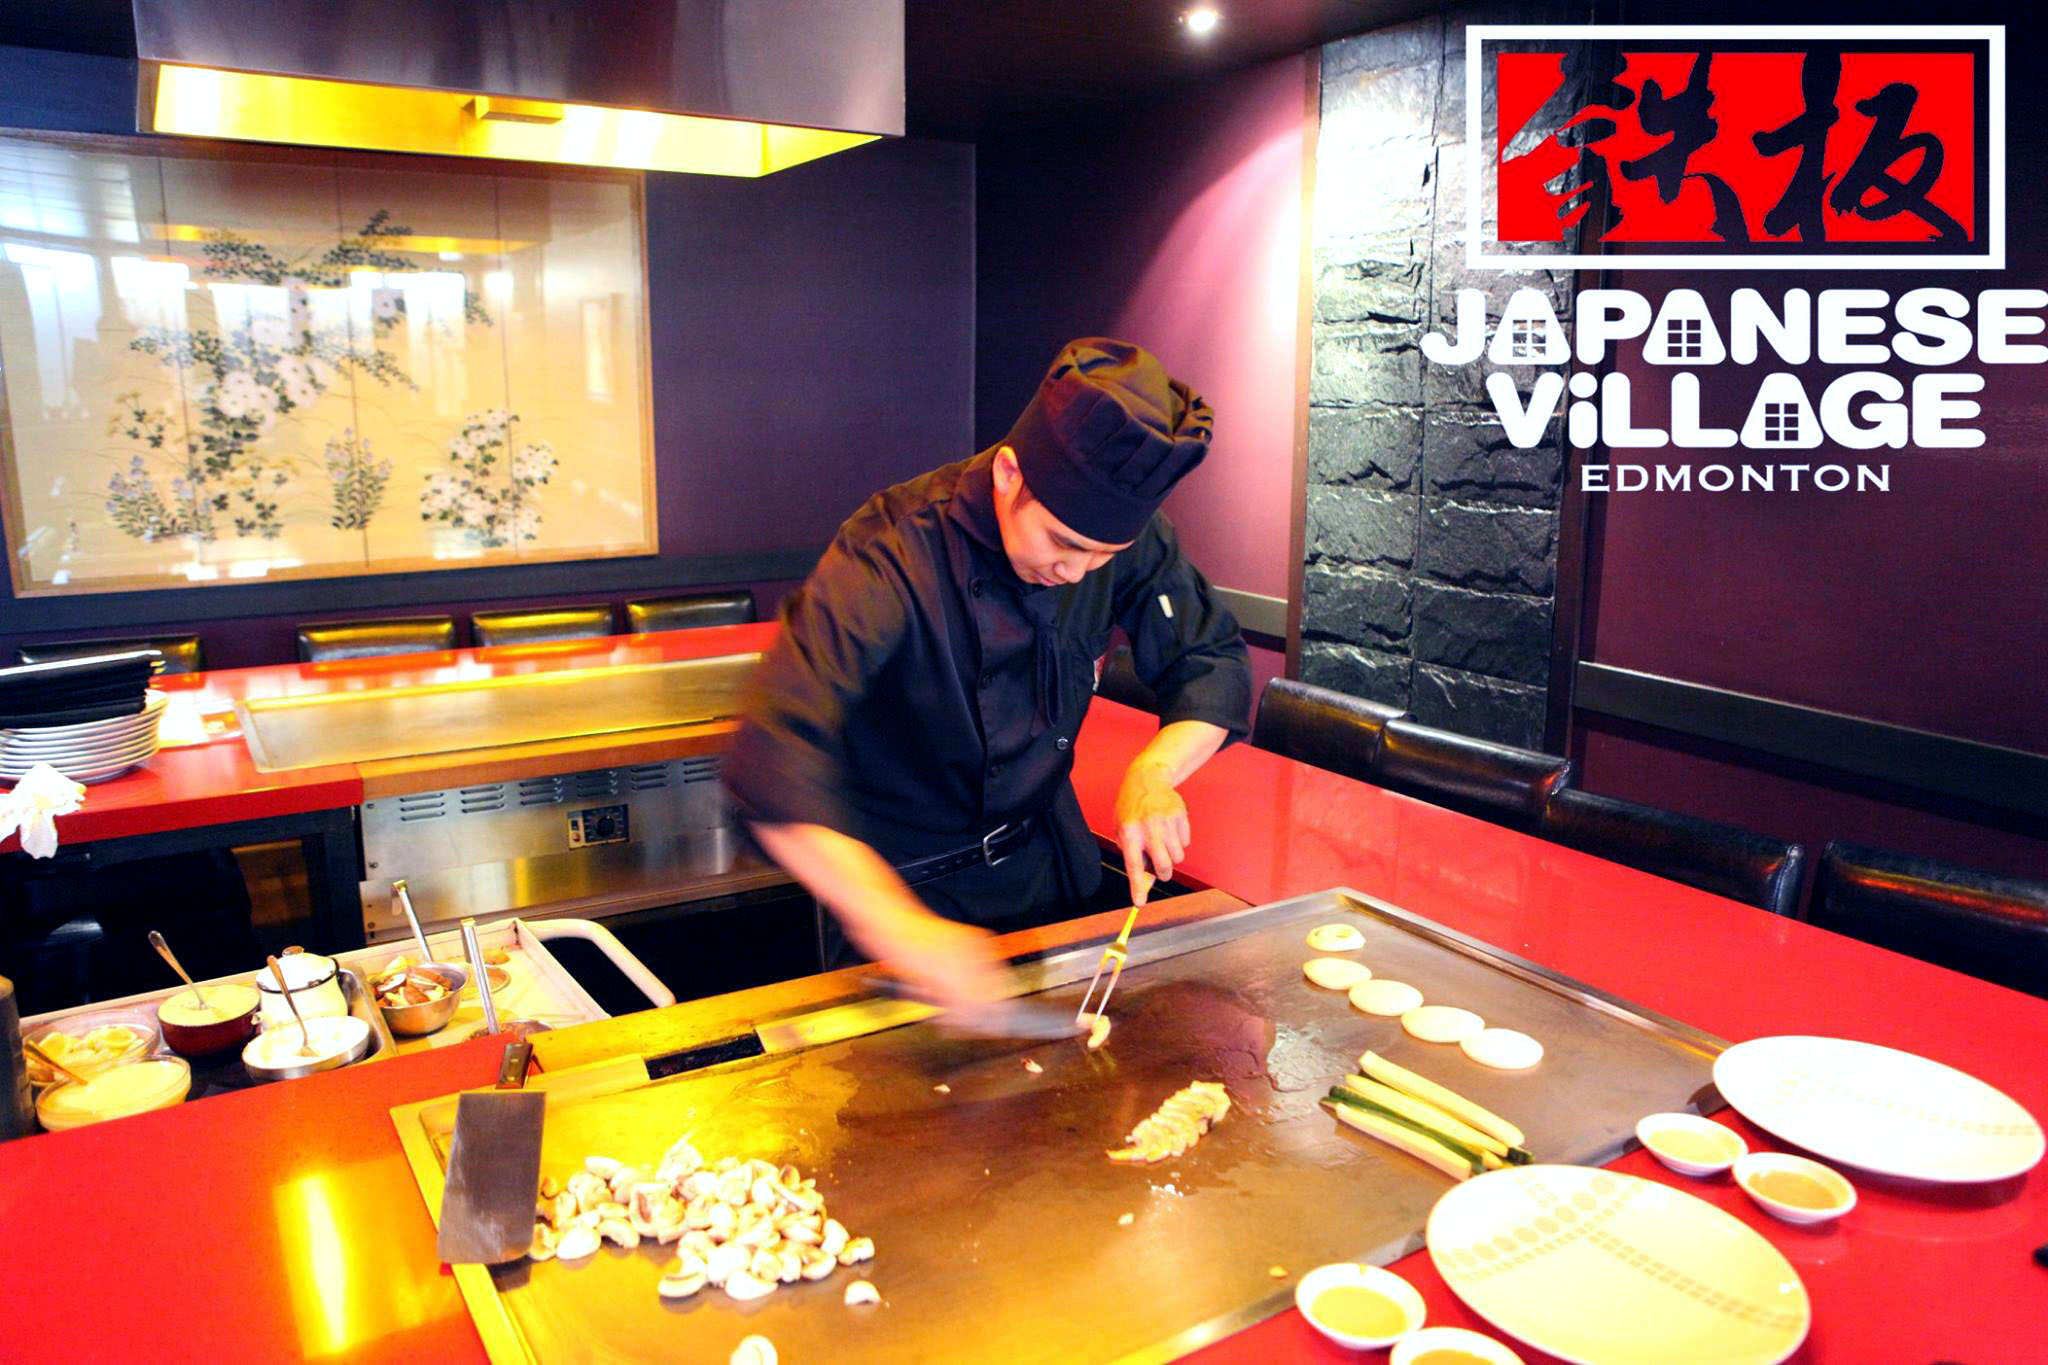 Win an Office Dinner at Japanese Village